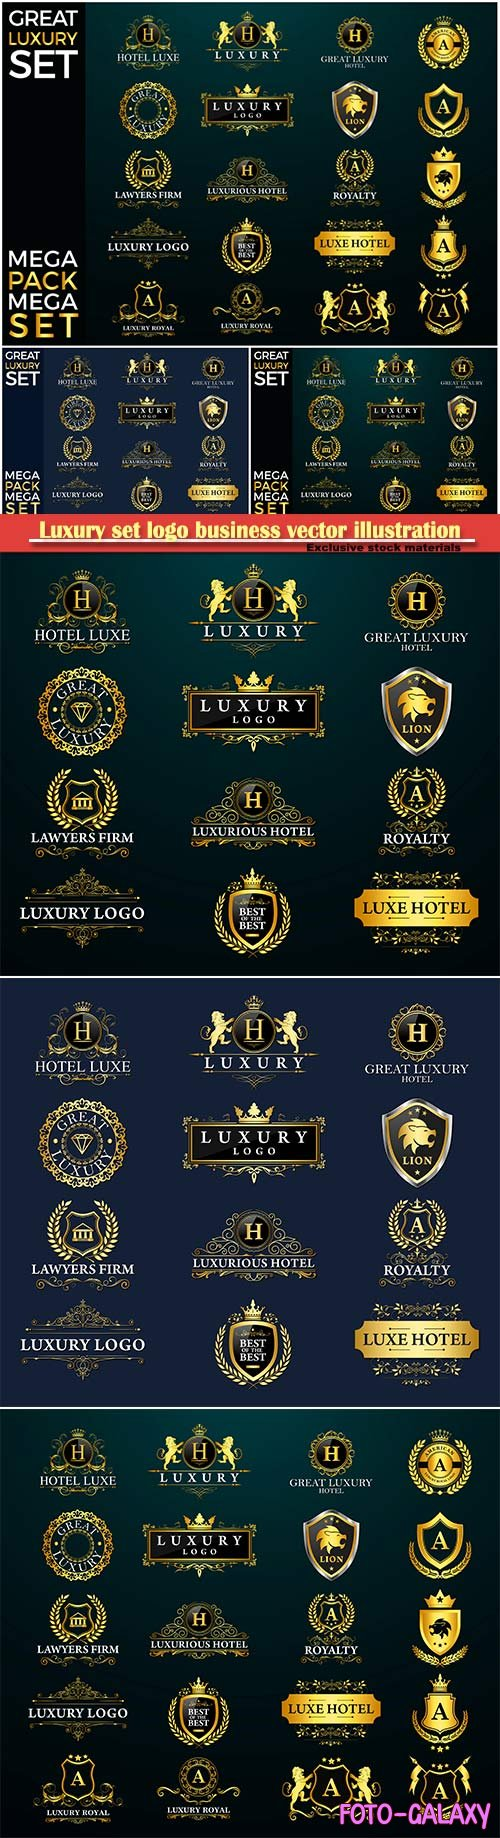 Luxury set logo business vector illustration template